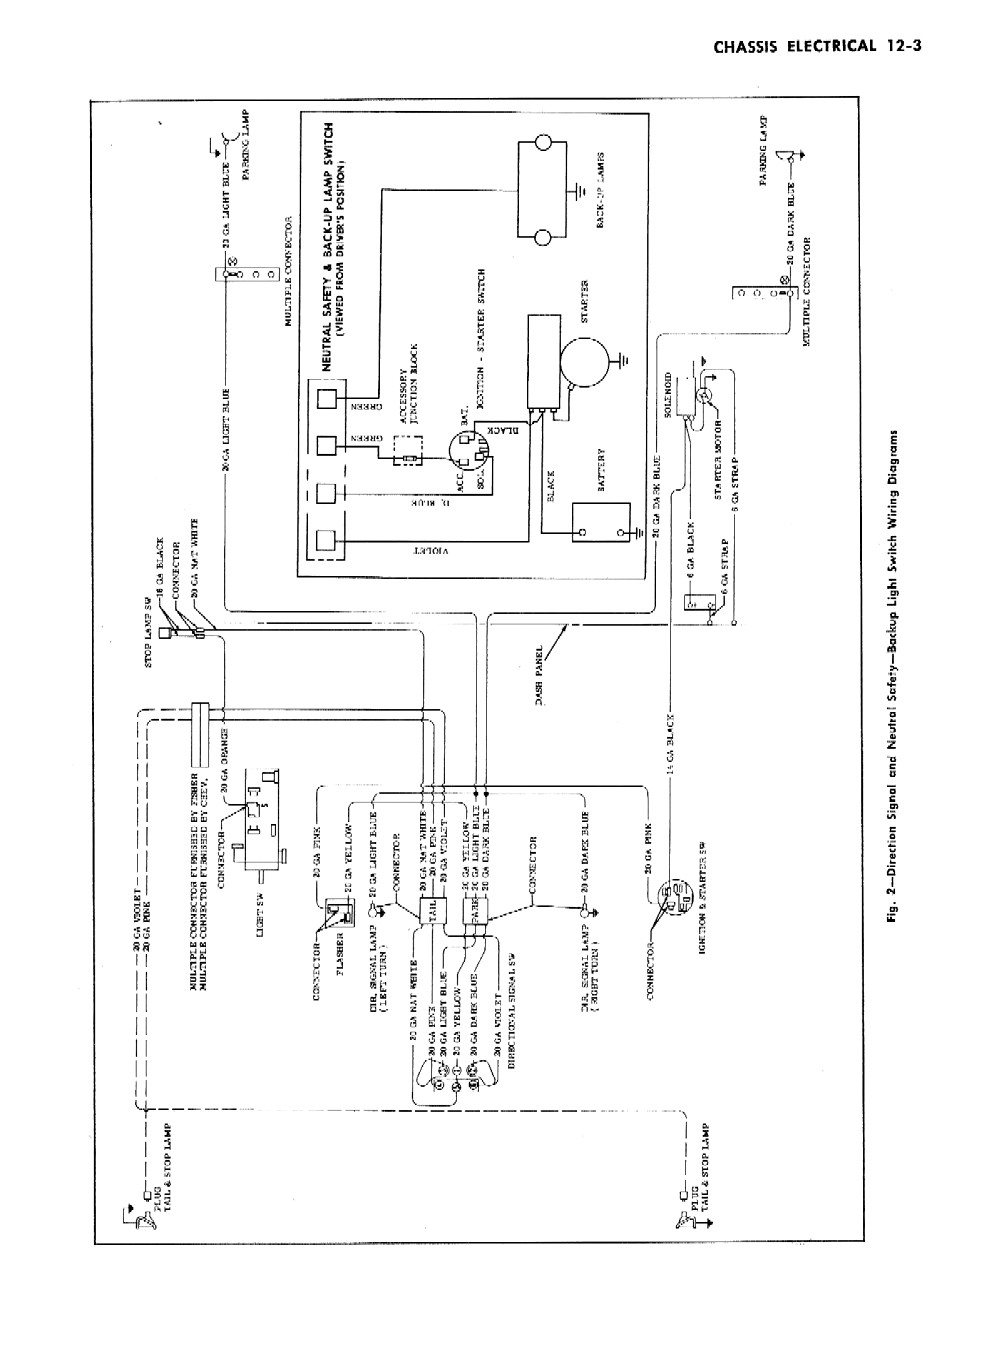 Wiring Diagram For 55 Chevy Schematic 2019 Painless Camaro 1955 Chevrolet Diagrams Classic